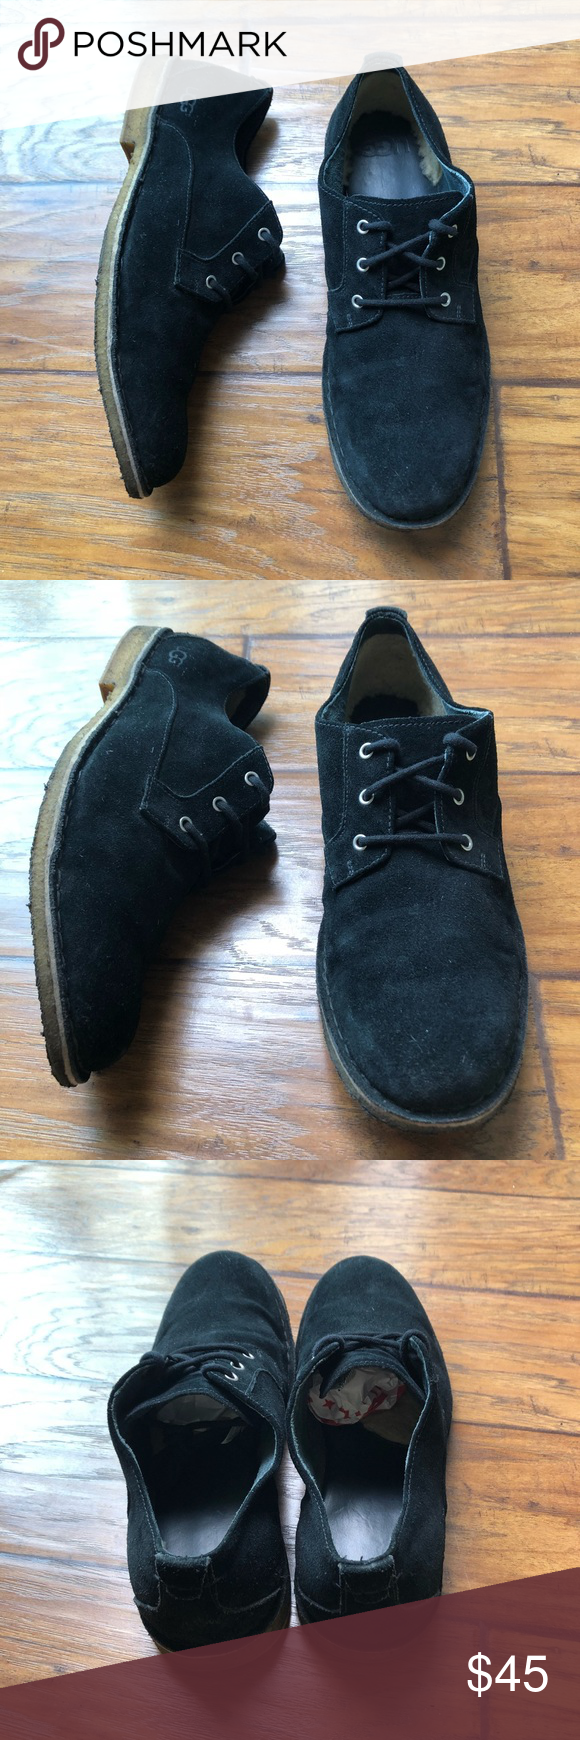 Ugg men's Black Suede Oxford shoes 12 Ugg Authentic Size